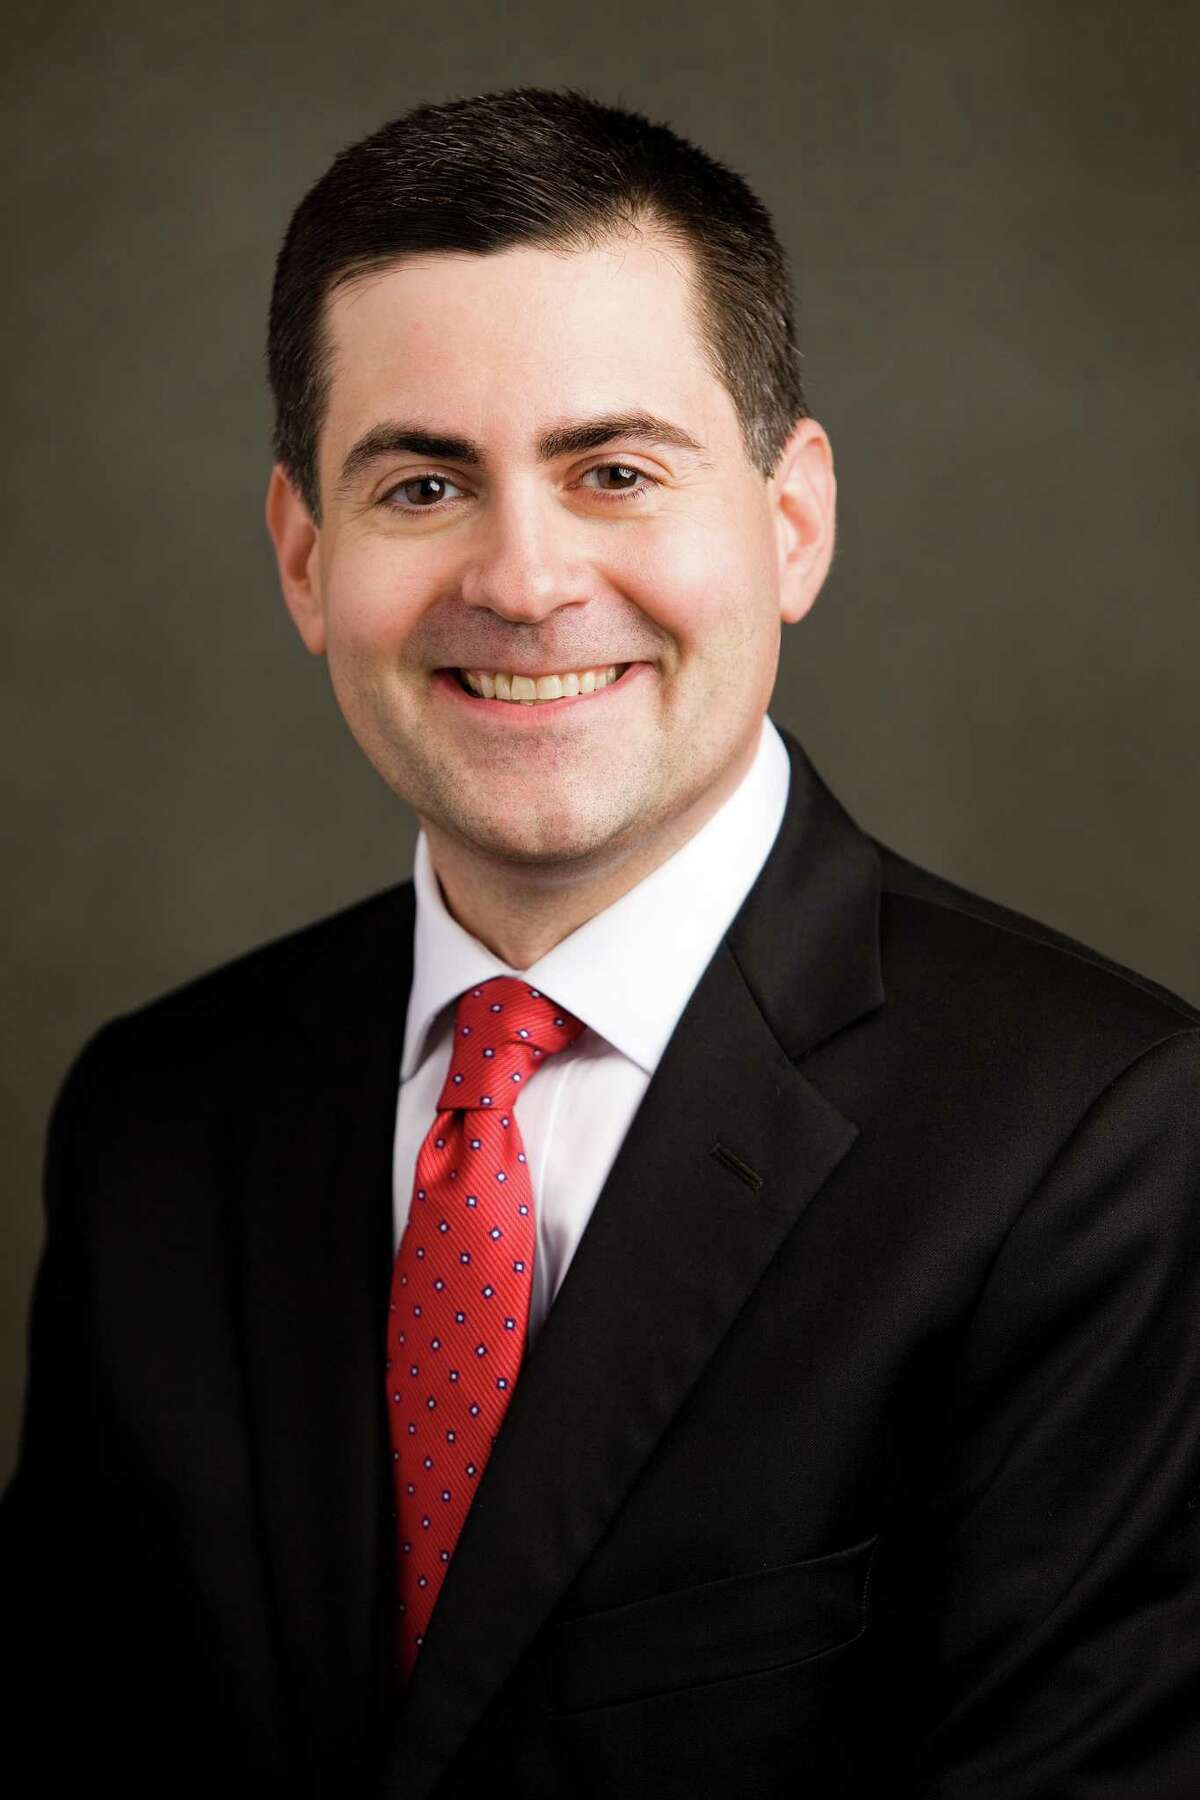 Russell Moore, dean of the School of Theology at Southern Baptist Theological Seminary.